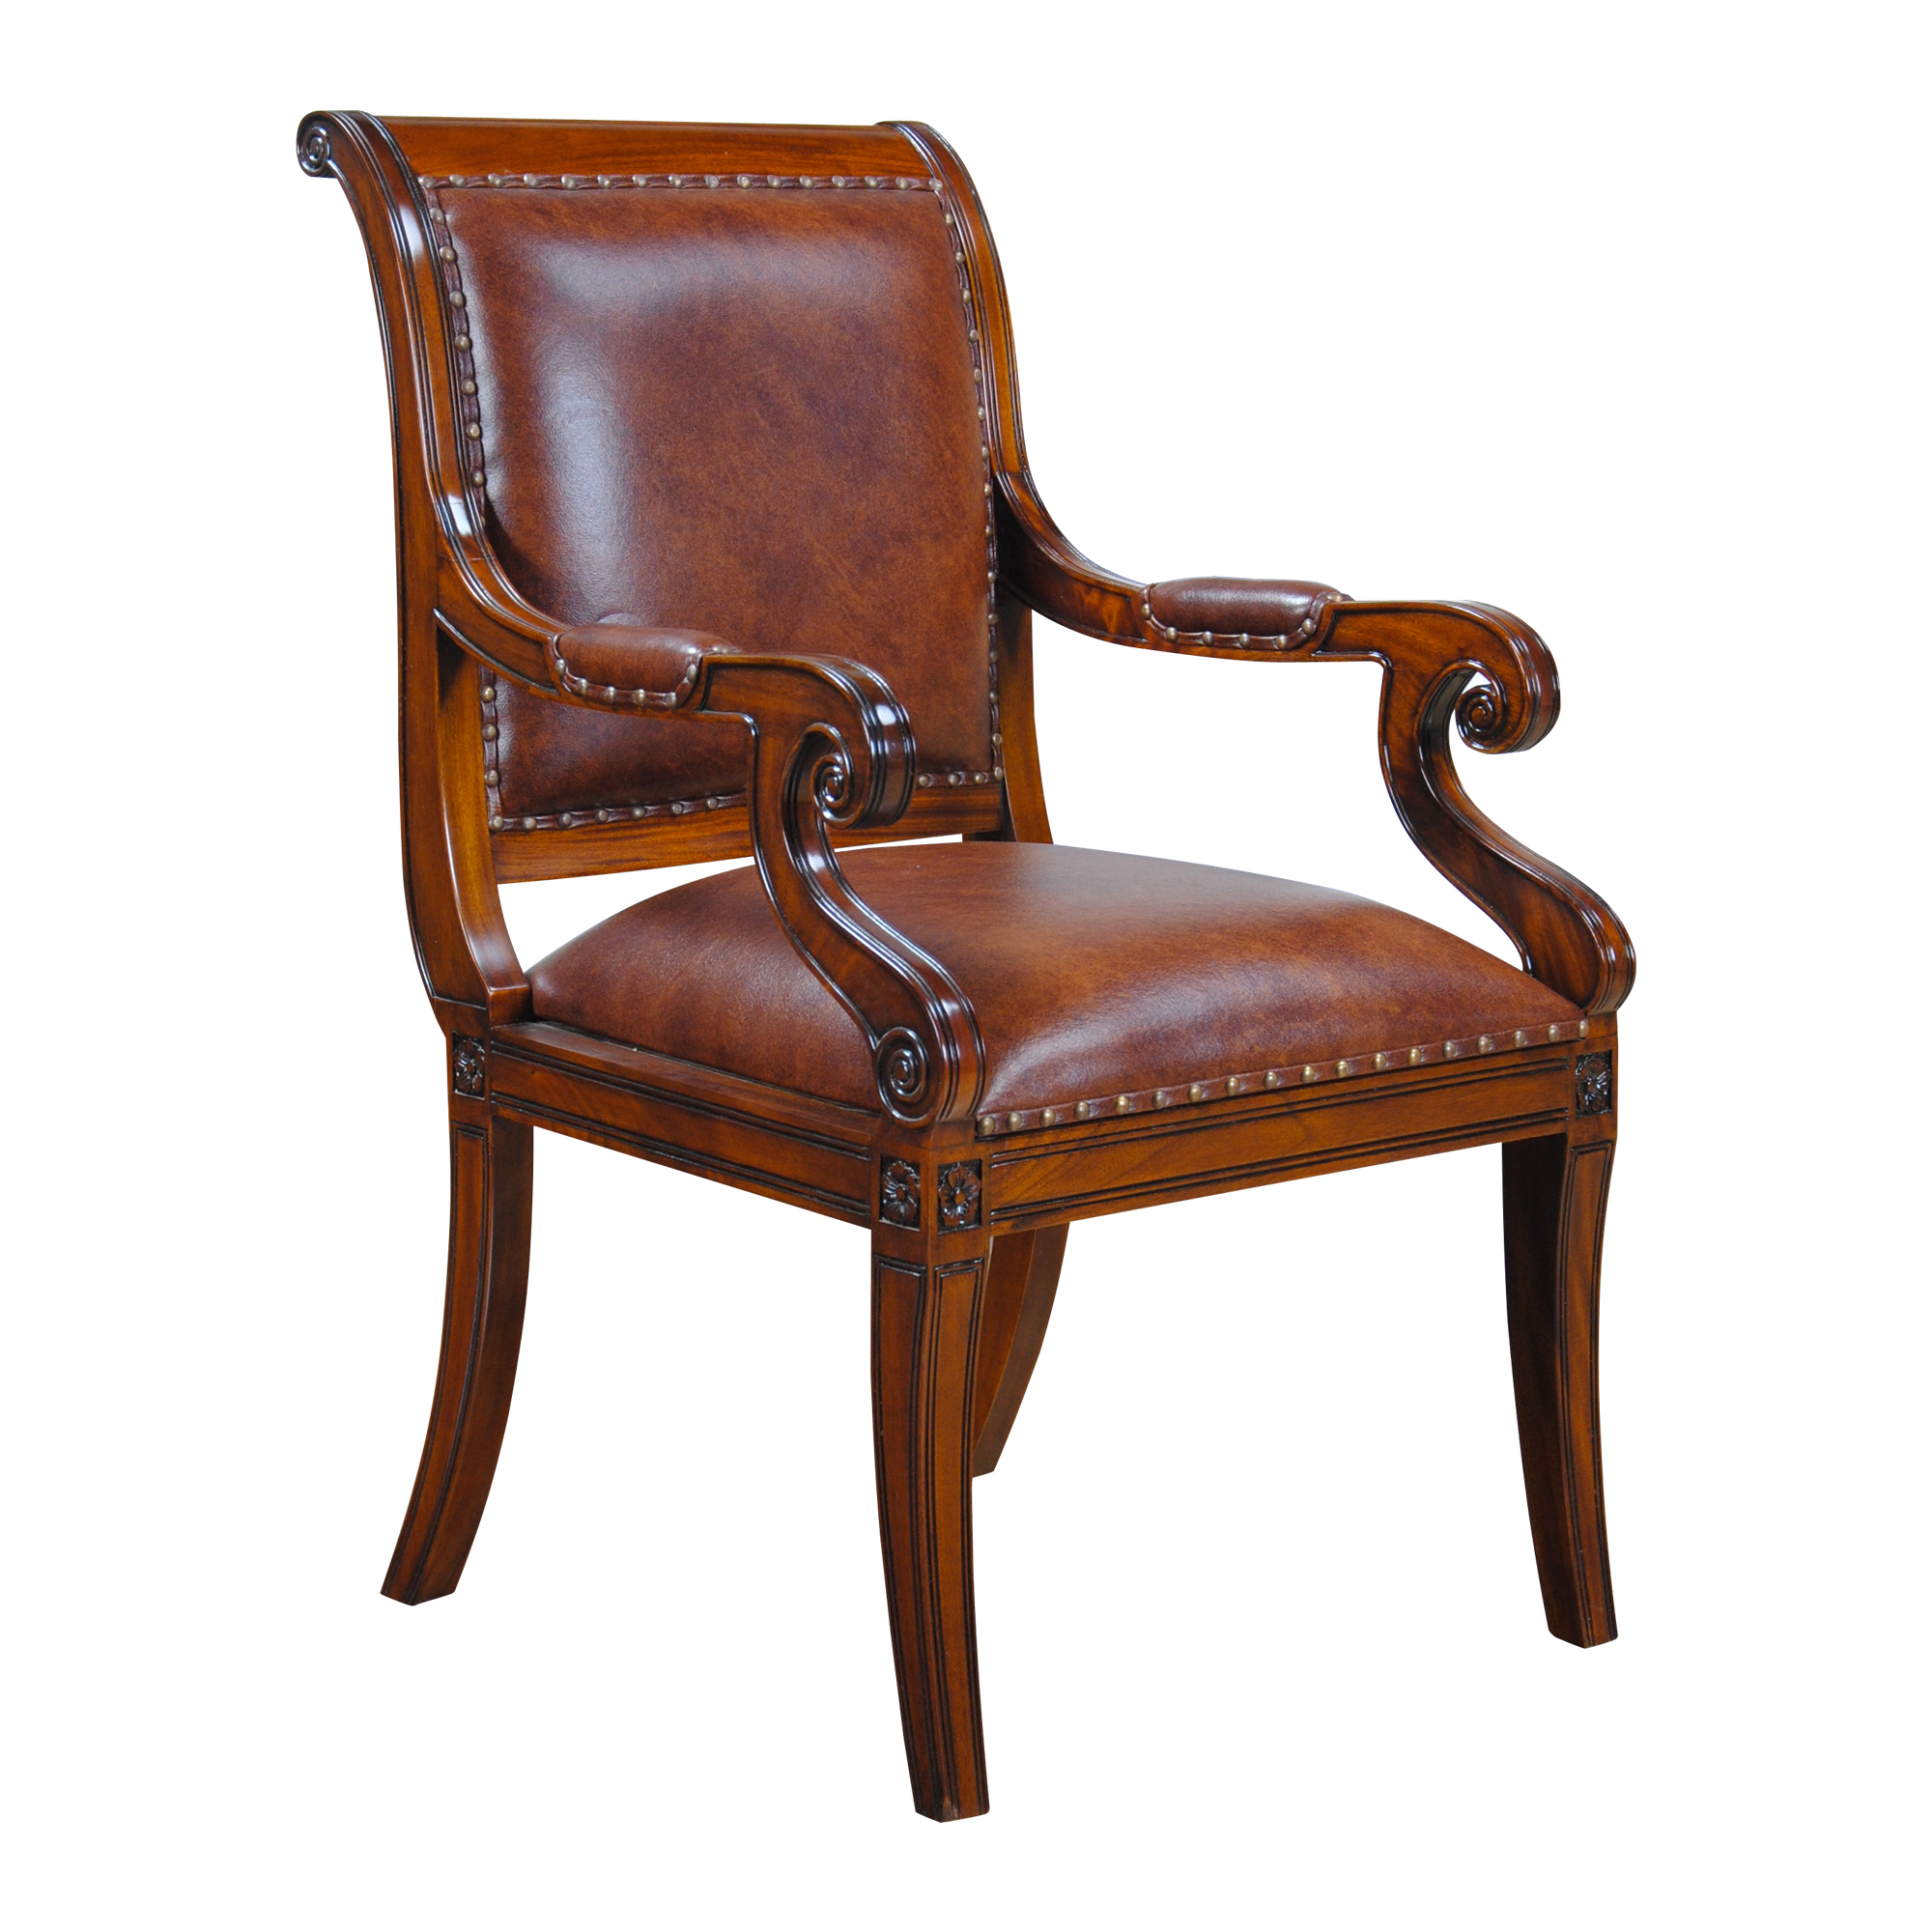 Regency Leather Arm Chair, Niagara Furniture, Full Grain